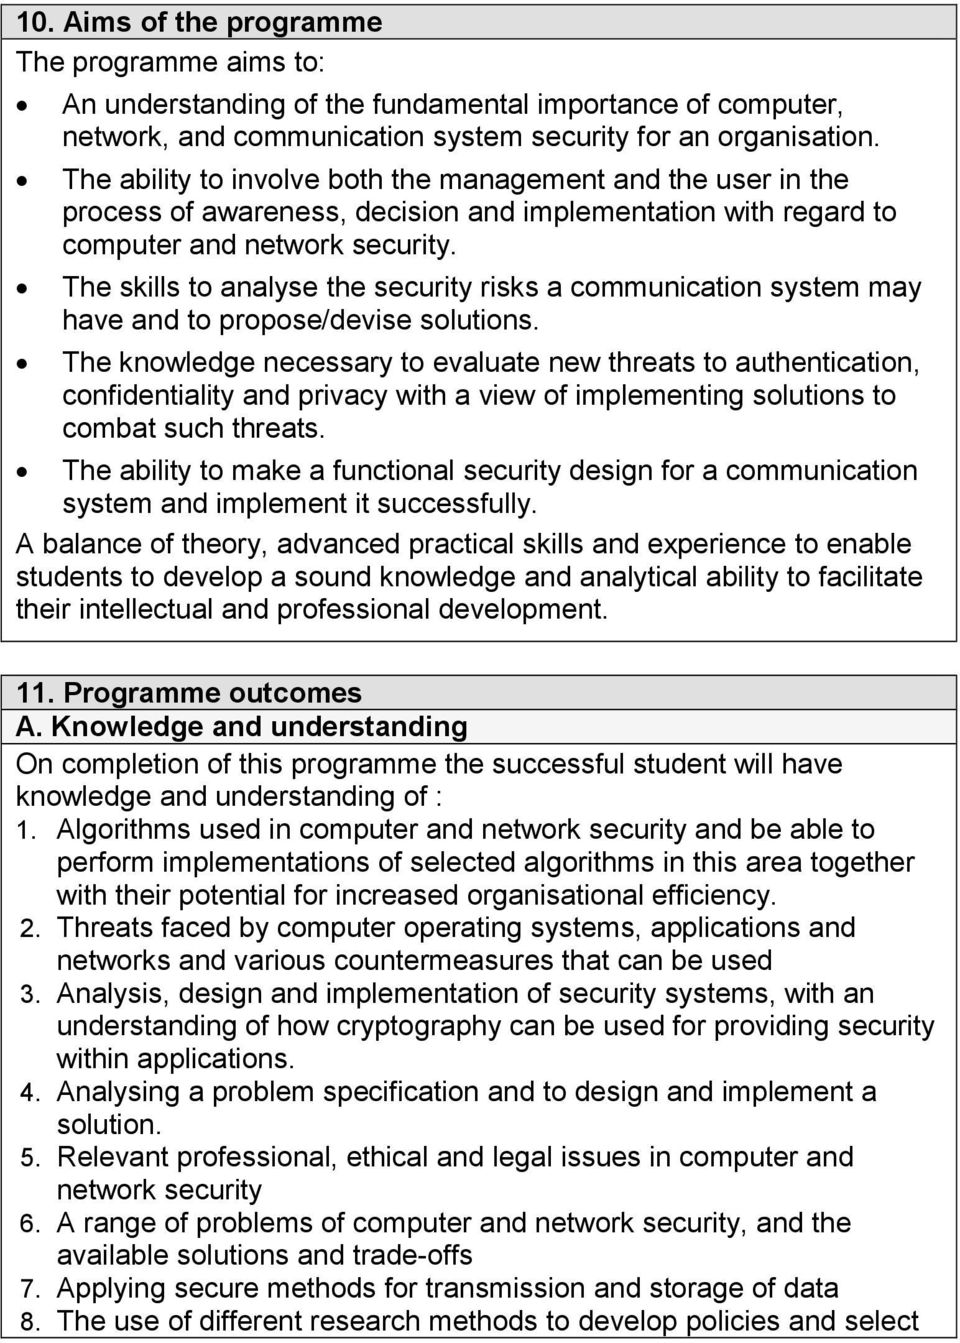 The skills to analyse the security risks a communication system may have and to propose/devise solutions.